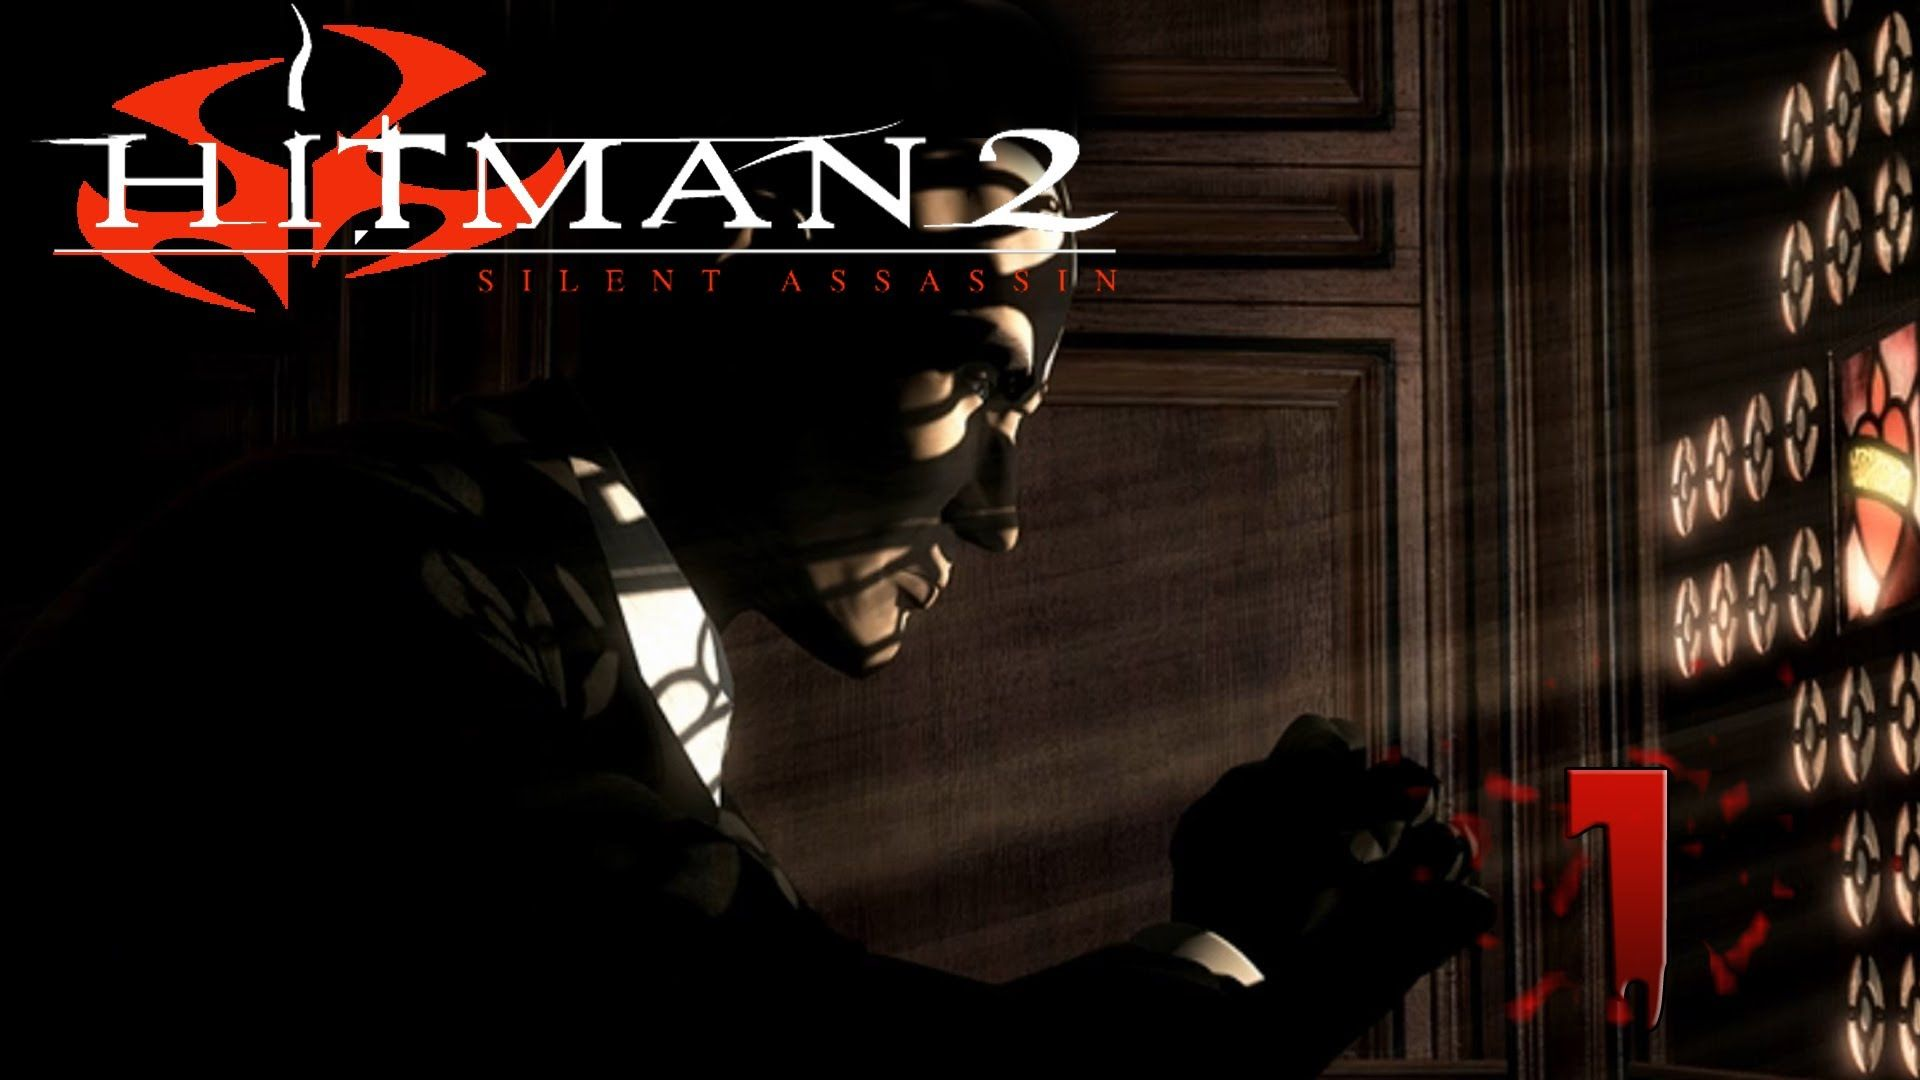 Hitman 2 Wallpapers Top Free Hitman 2 Backgrounds Wallpaperaccess